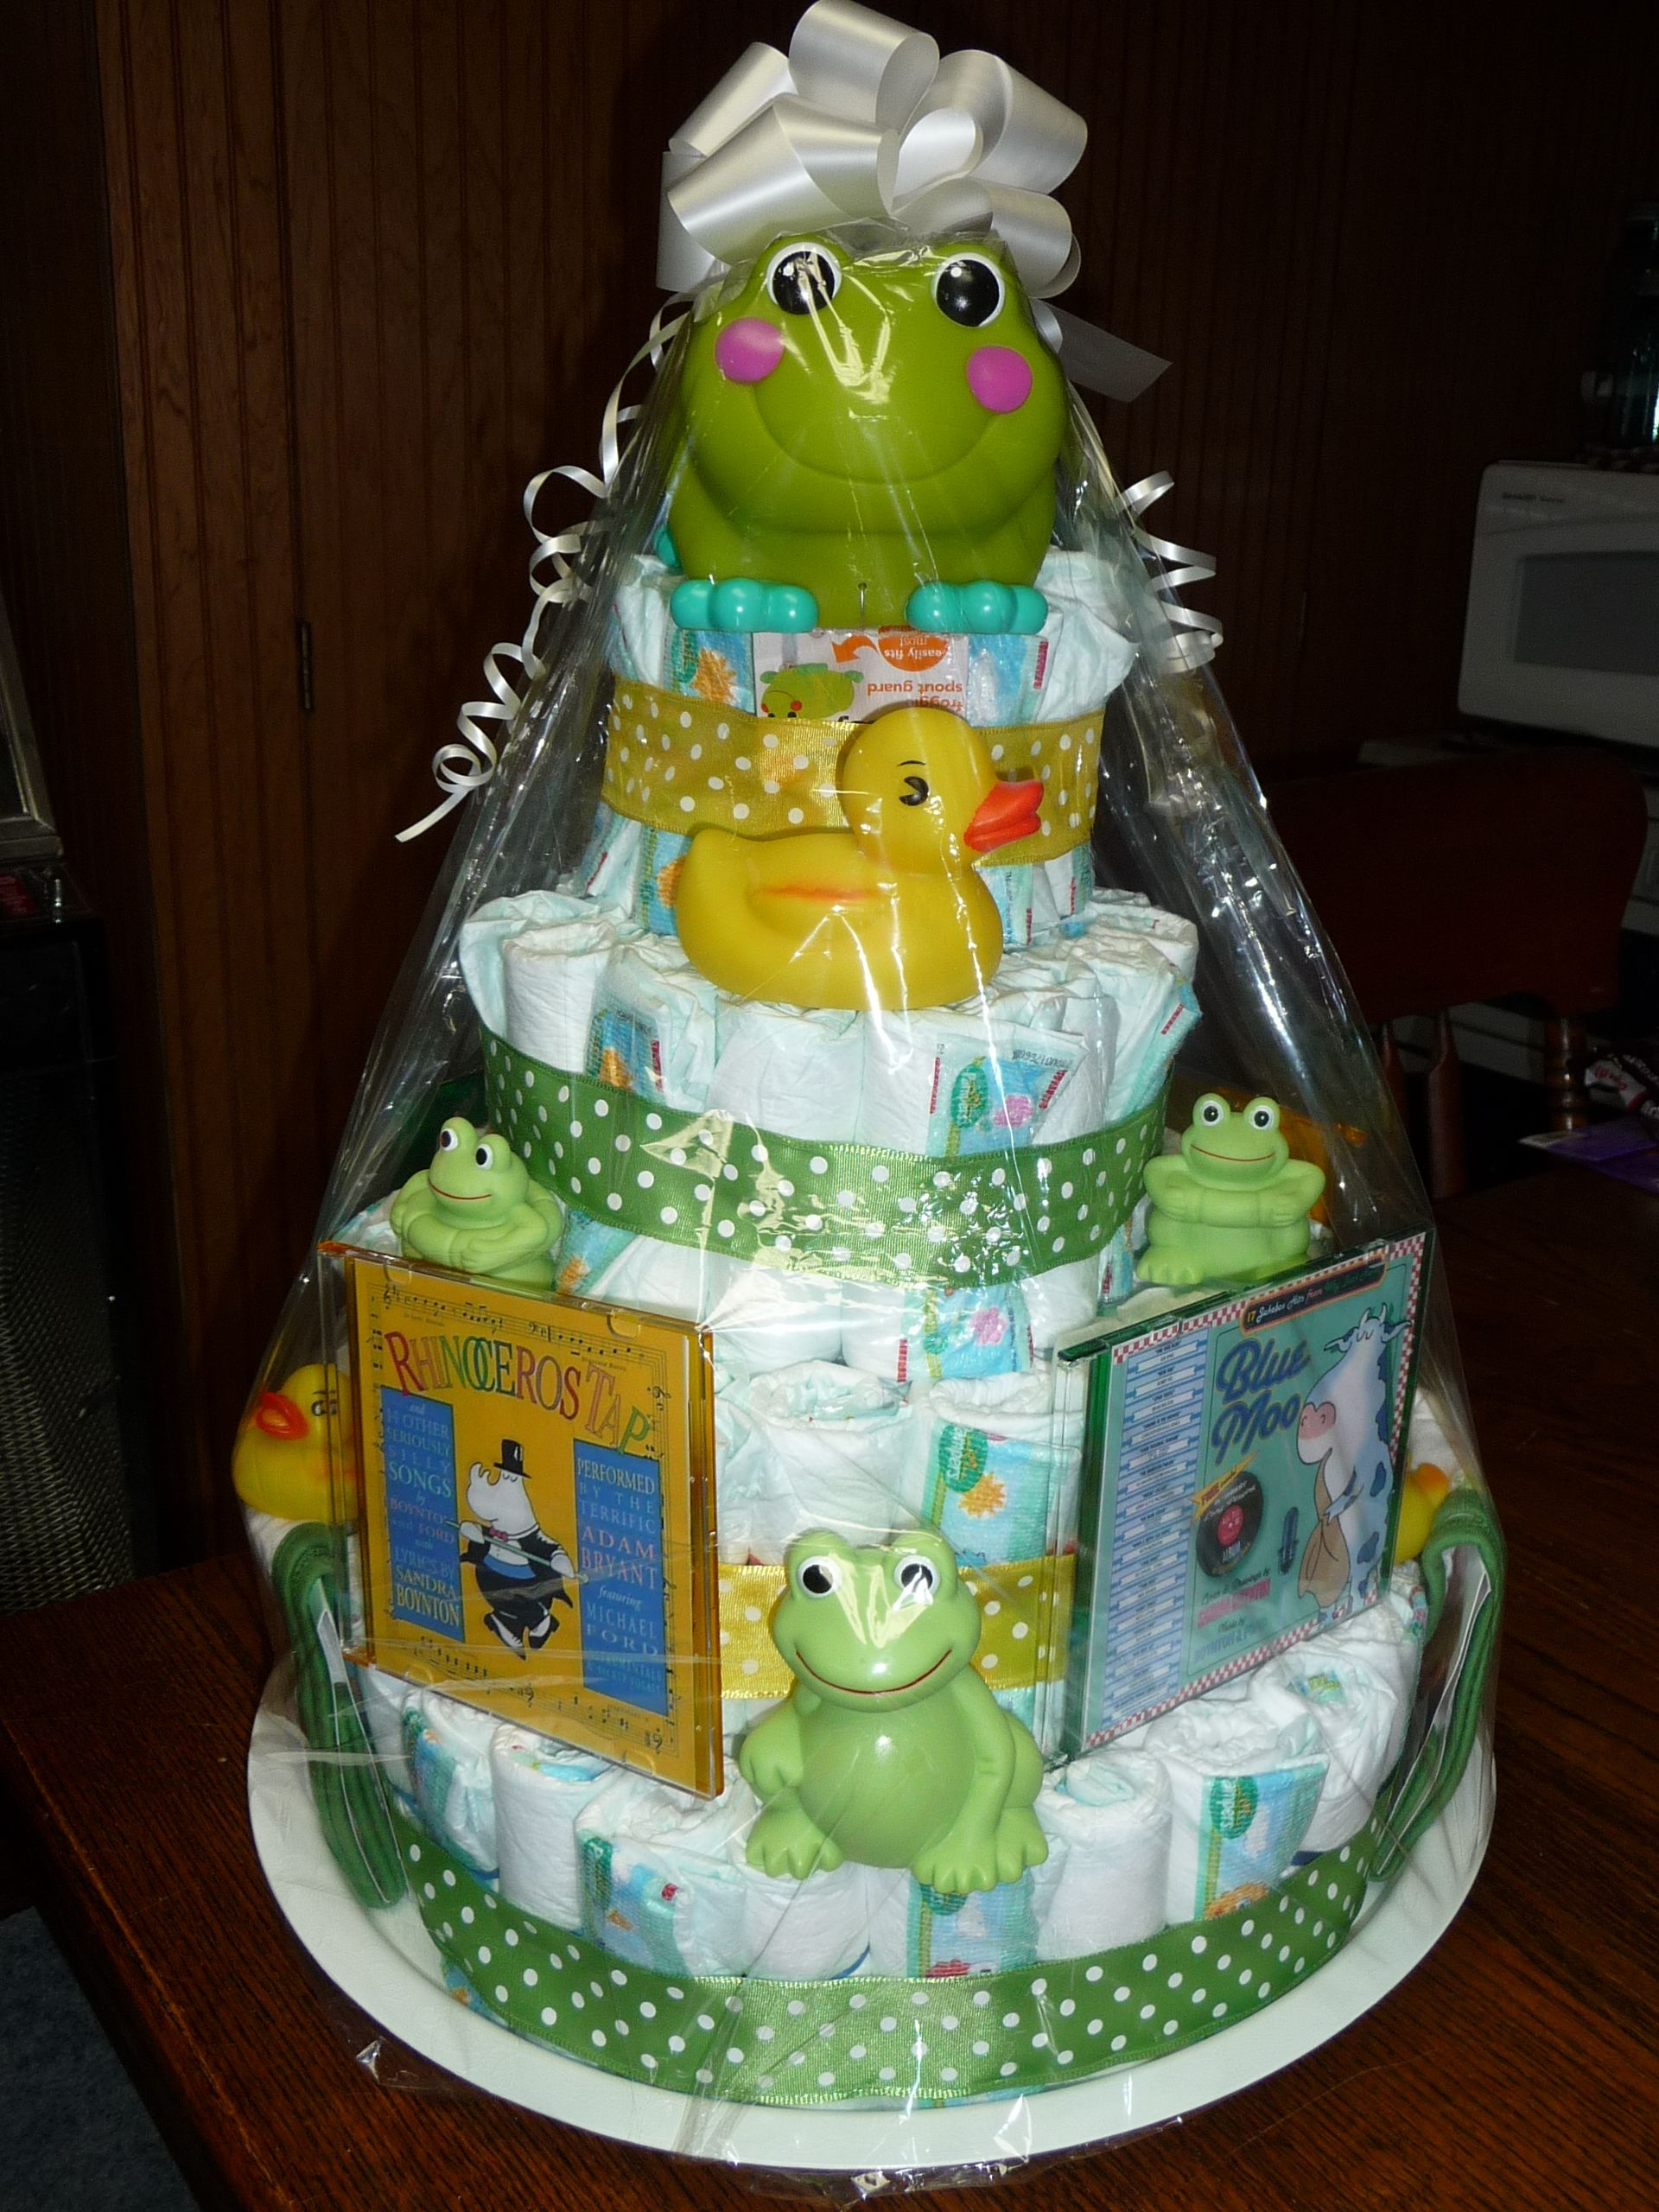 My Attempt At A Gender Neutral Diaper Cake As A Baby Shower Gift. Used A